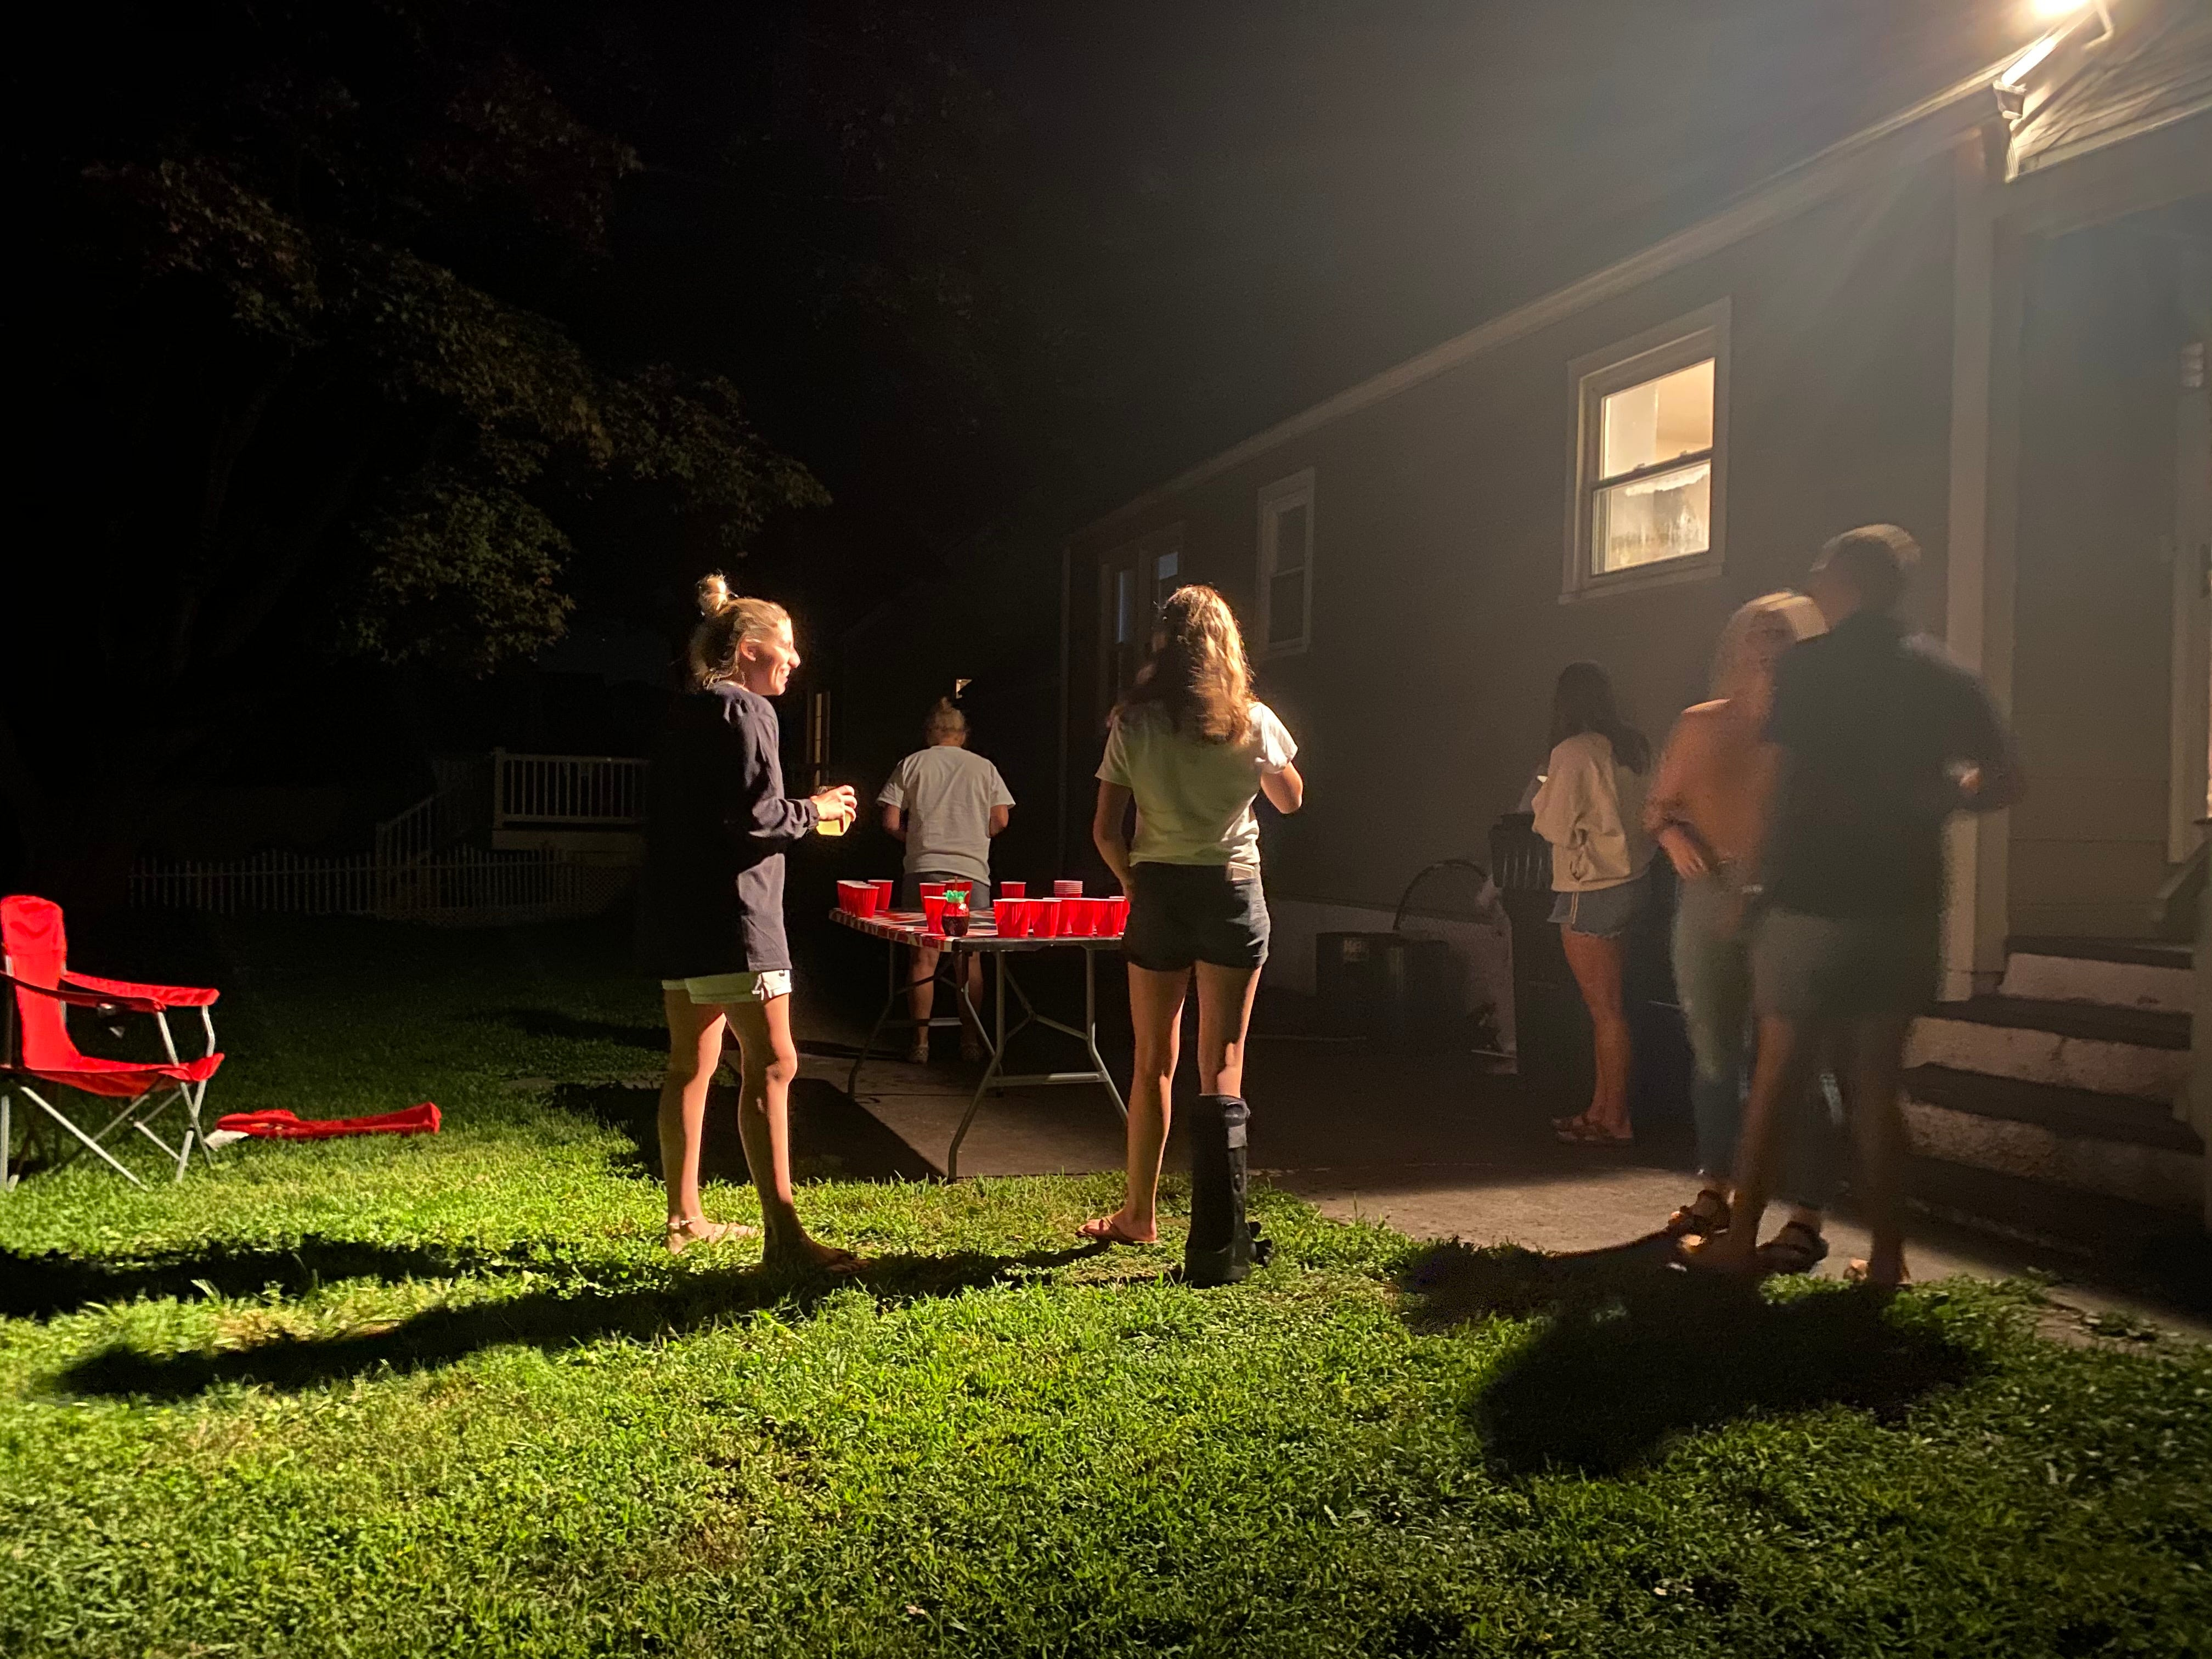 People congregate Friday at a party near the Fairfield University campus in Connecticut. A prior version of this story misstated the credit for this photo.